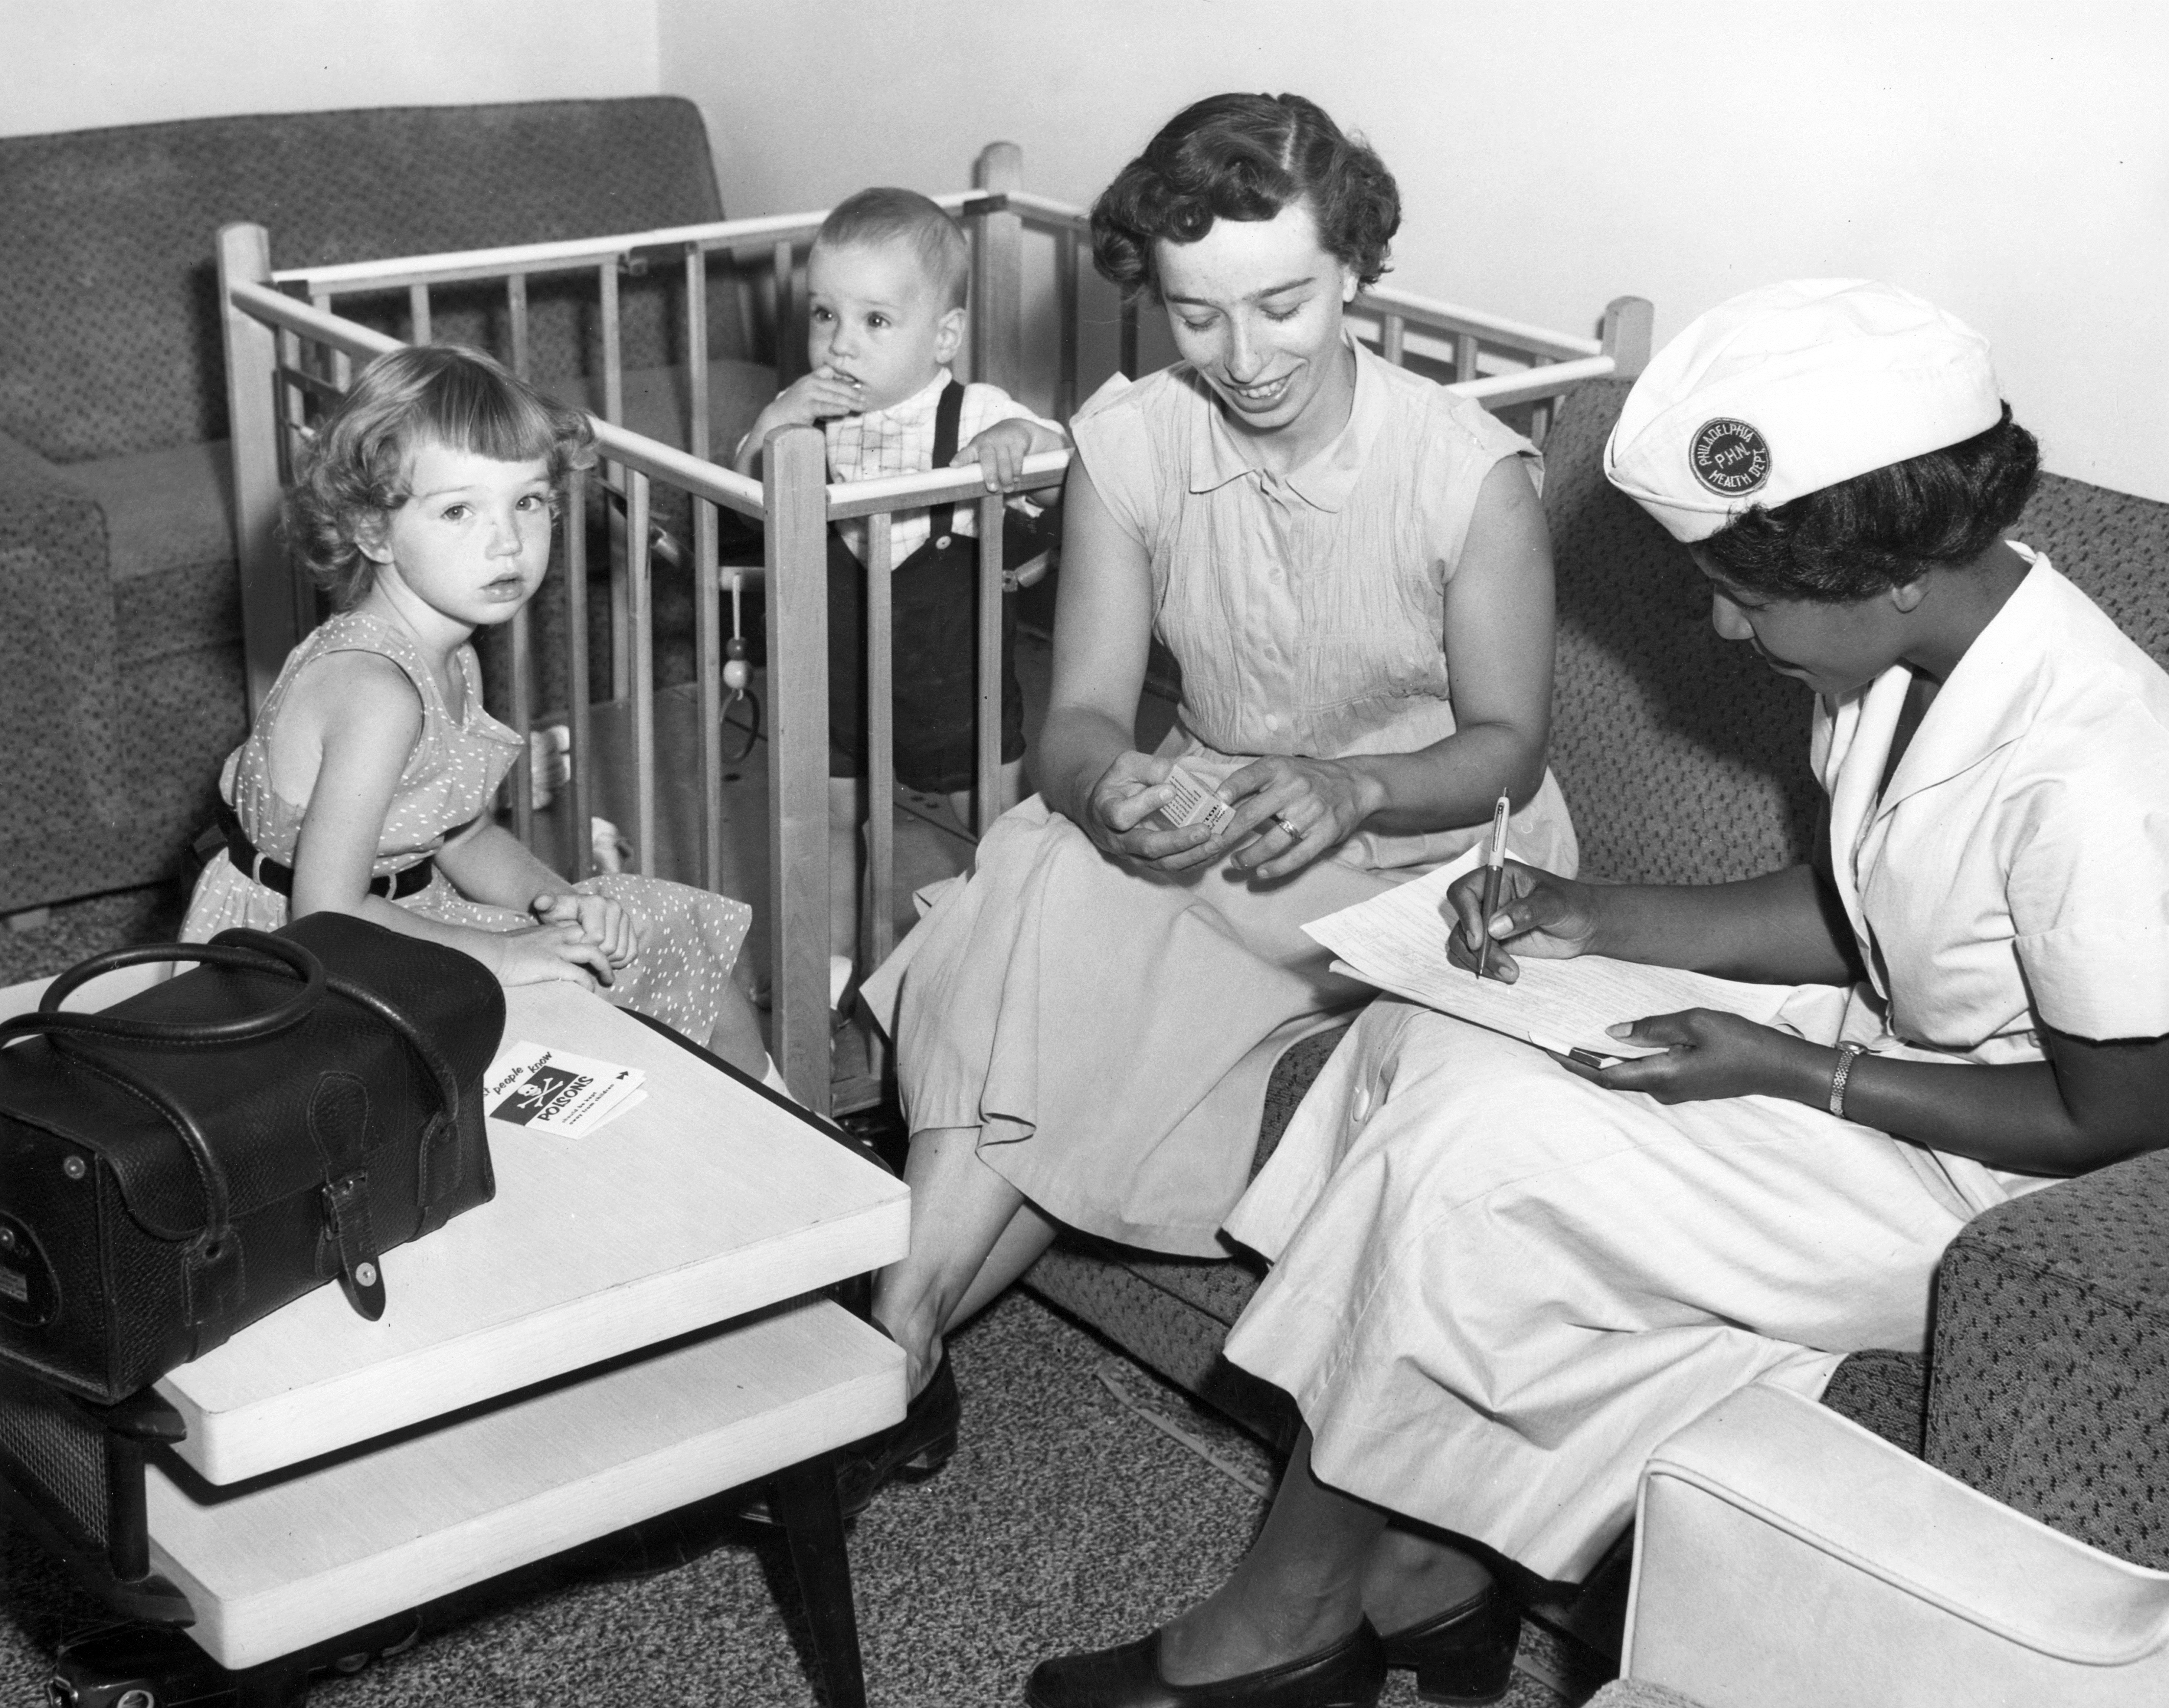 Visiting nurse takes a health history during a home visit, Visiting Nurse Society of Philadelphia,  c. 1957.